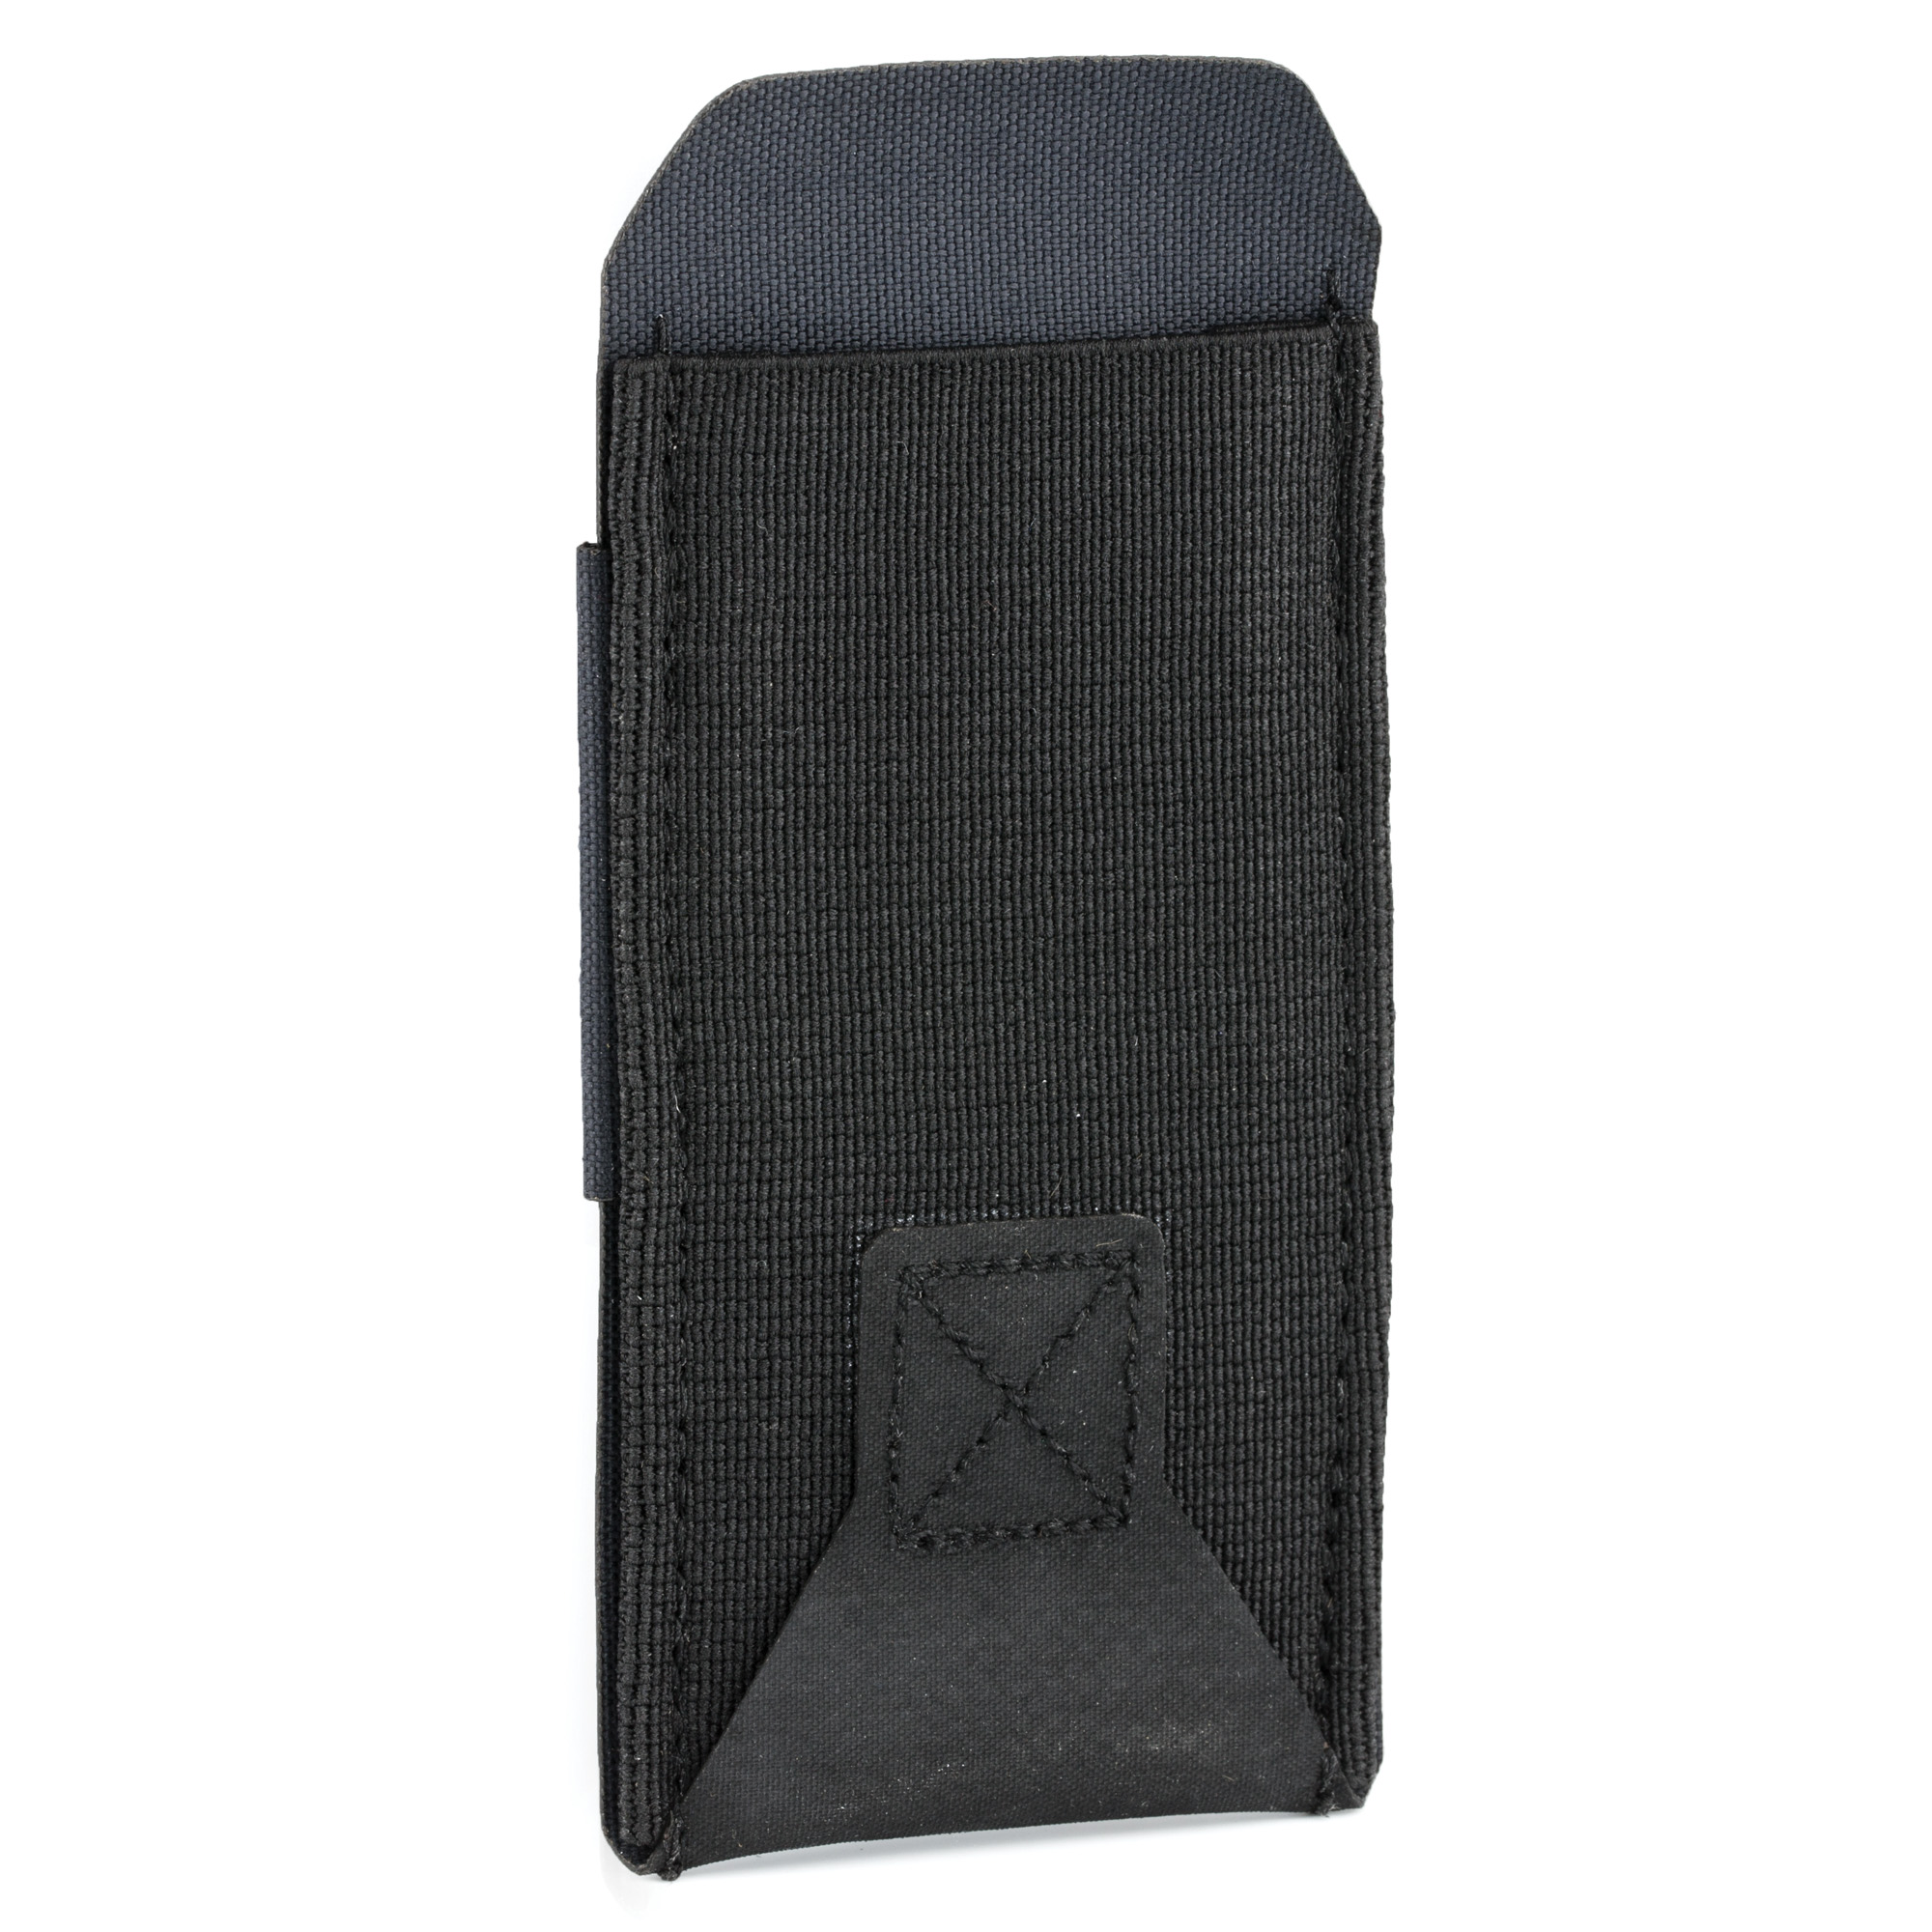 """The Belt Mounted Pistol Pouch brings combat-proven Ten-Speed multi-use pouches to a belt platform. Whether worn at home on a duty belt"""" or under clothing for concealed carry"""" the Ten-Speed(R) pouch securely holds a single pistol magazine while allowing for immediate accessibility. The single pistol mag pouch uses a hook and loop closure system to attach to belts or duty belts up to 2.0 inches in width. The Ten-Speed(R) pouch has no sharp edges or hard corners"""" making for comfortable all-day carry and allowing the pouch to lay flat when the mag is removed. The front of the pouch is constructed with military-grade elastic sewn to ULTRAcomp(TM)"""" a high performance laminate as used in MOLLEminus(TM) and Helium Whisper(R) pouches."""